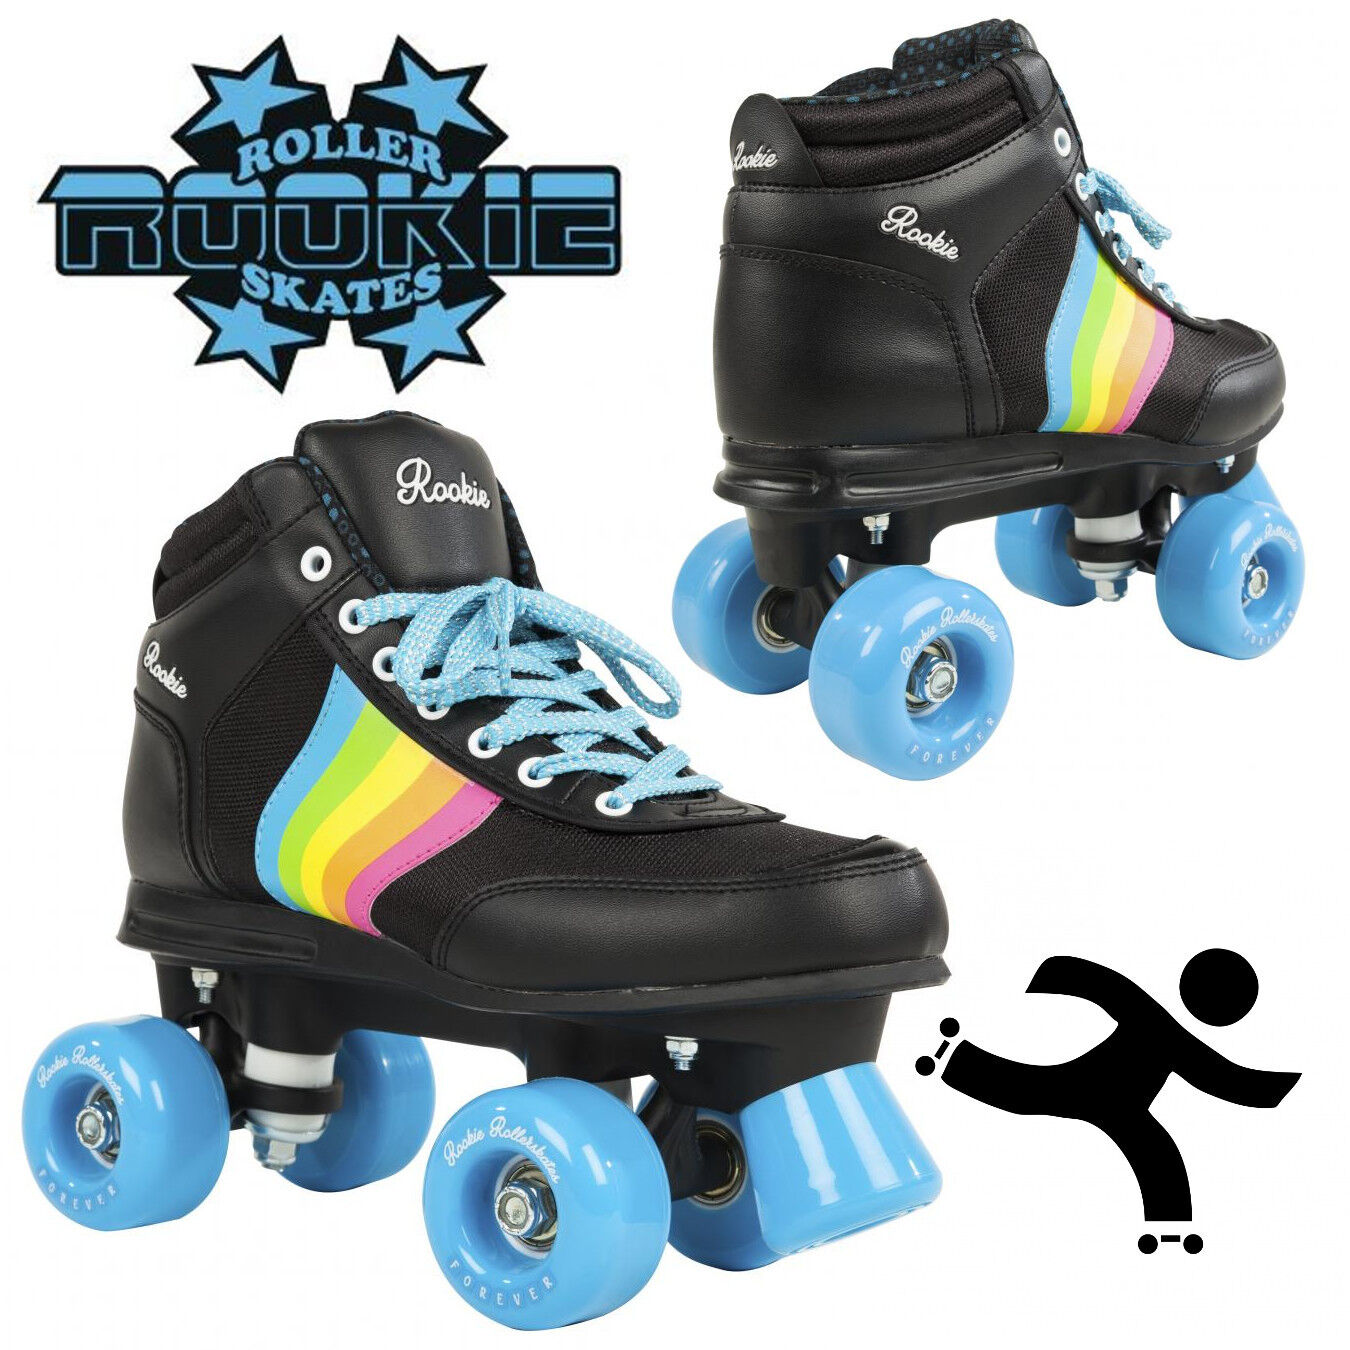 72e87f9b343 Details about Rookie Roller Skates Forever Rainbow V2 Black Retro Style  Girls Adults